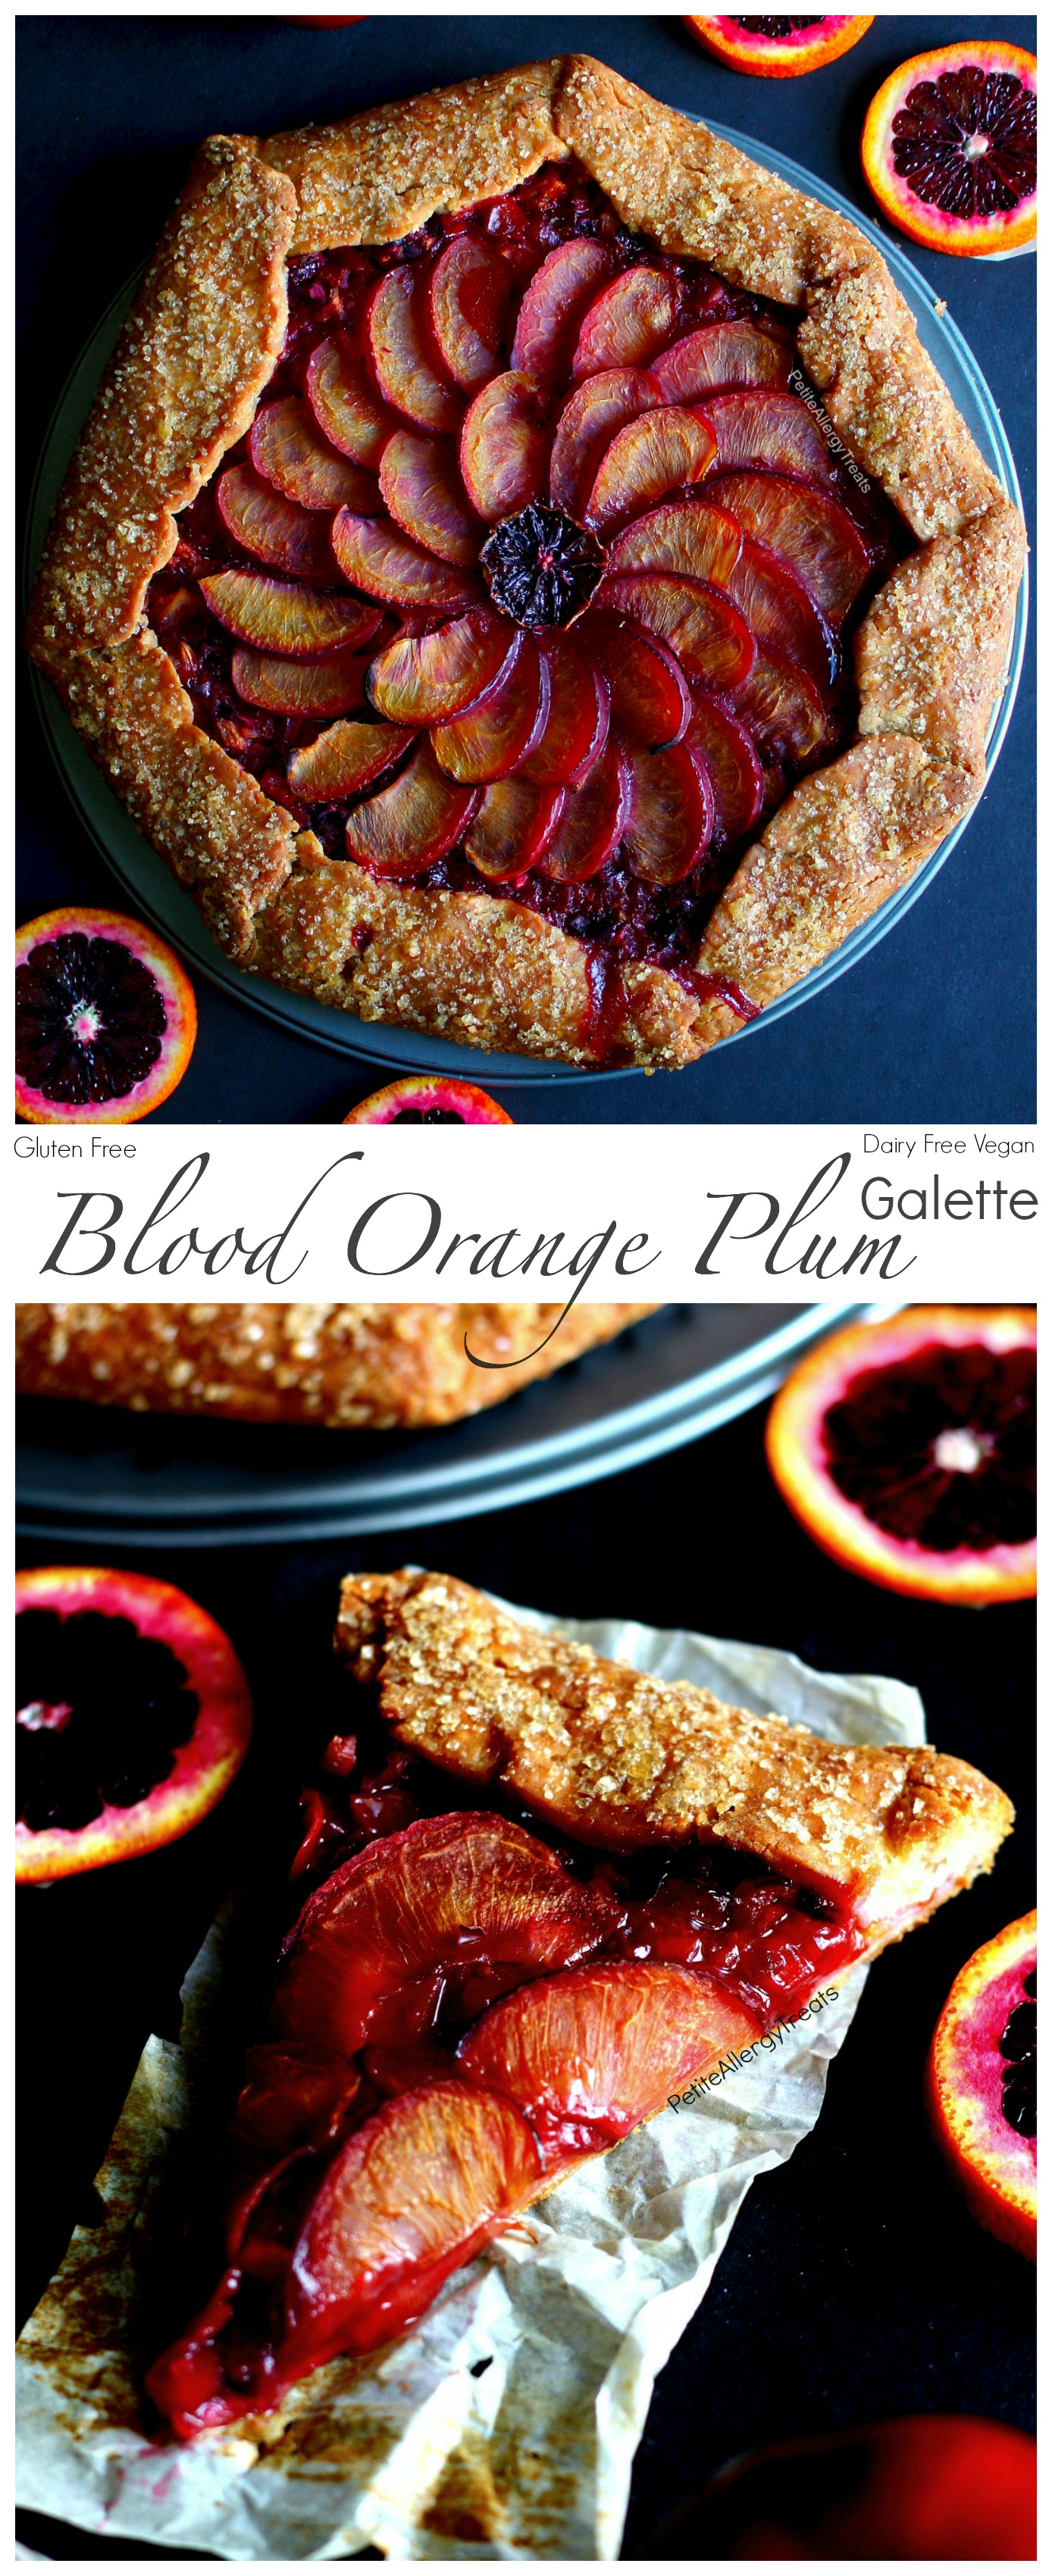 Gluten Free Plum Pie Recipe (vegan dairy free)- Easy rustic galette filled with tart blood oranges and sweet plums